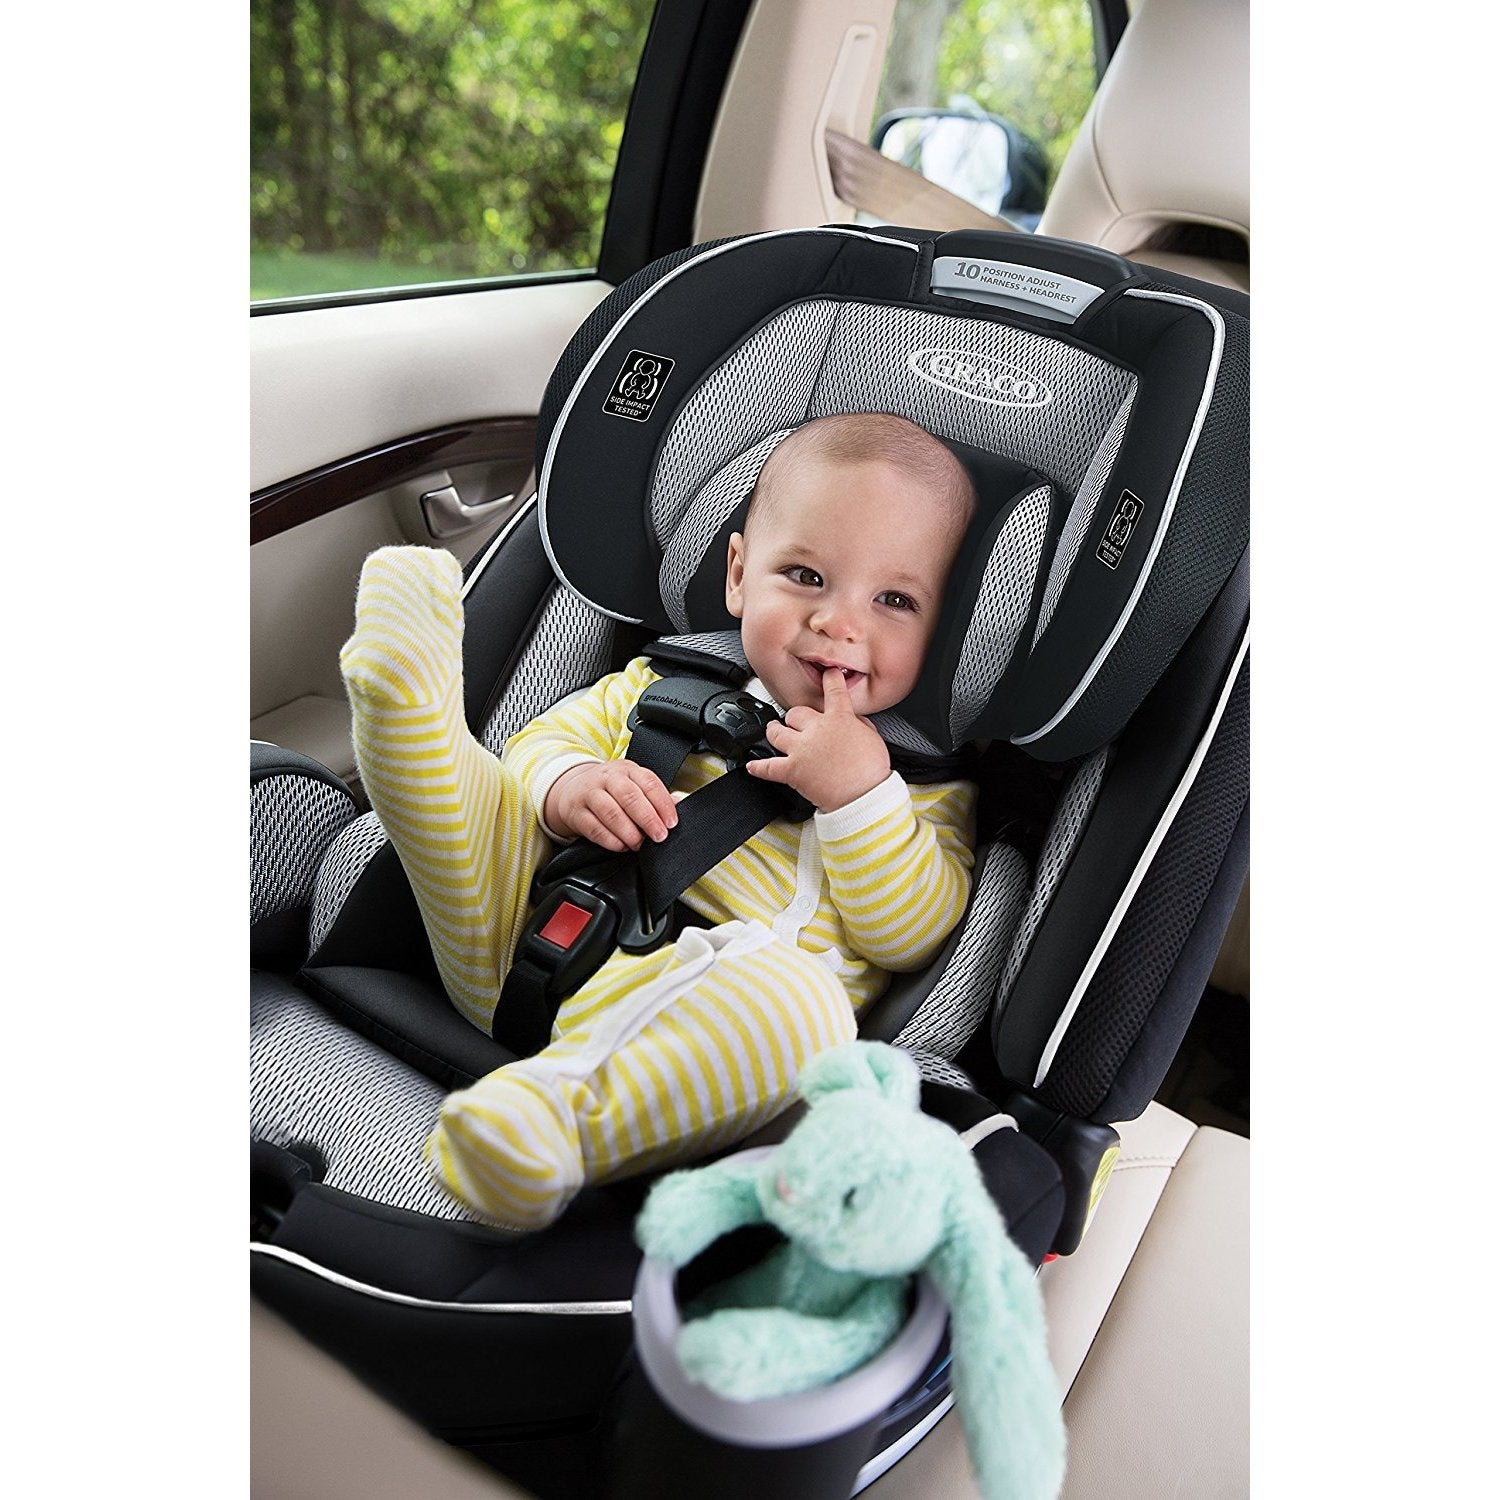 Graco Matrix 4Ever All in One Car Seat, Black